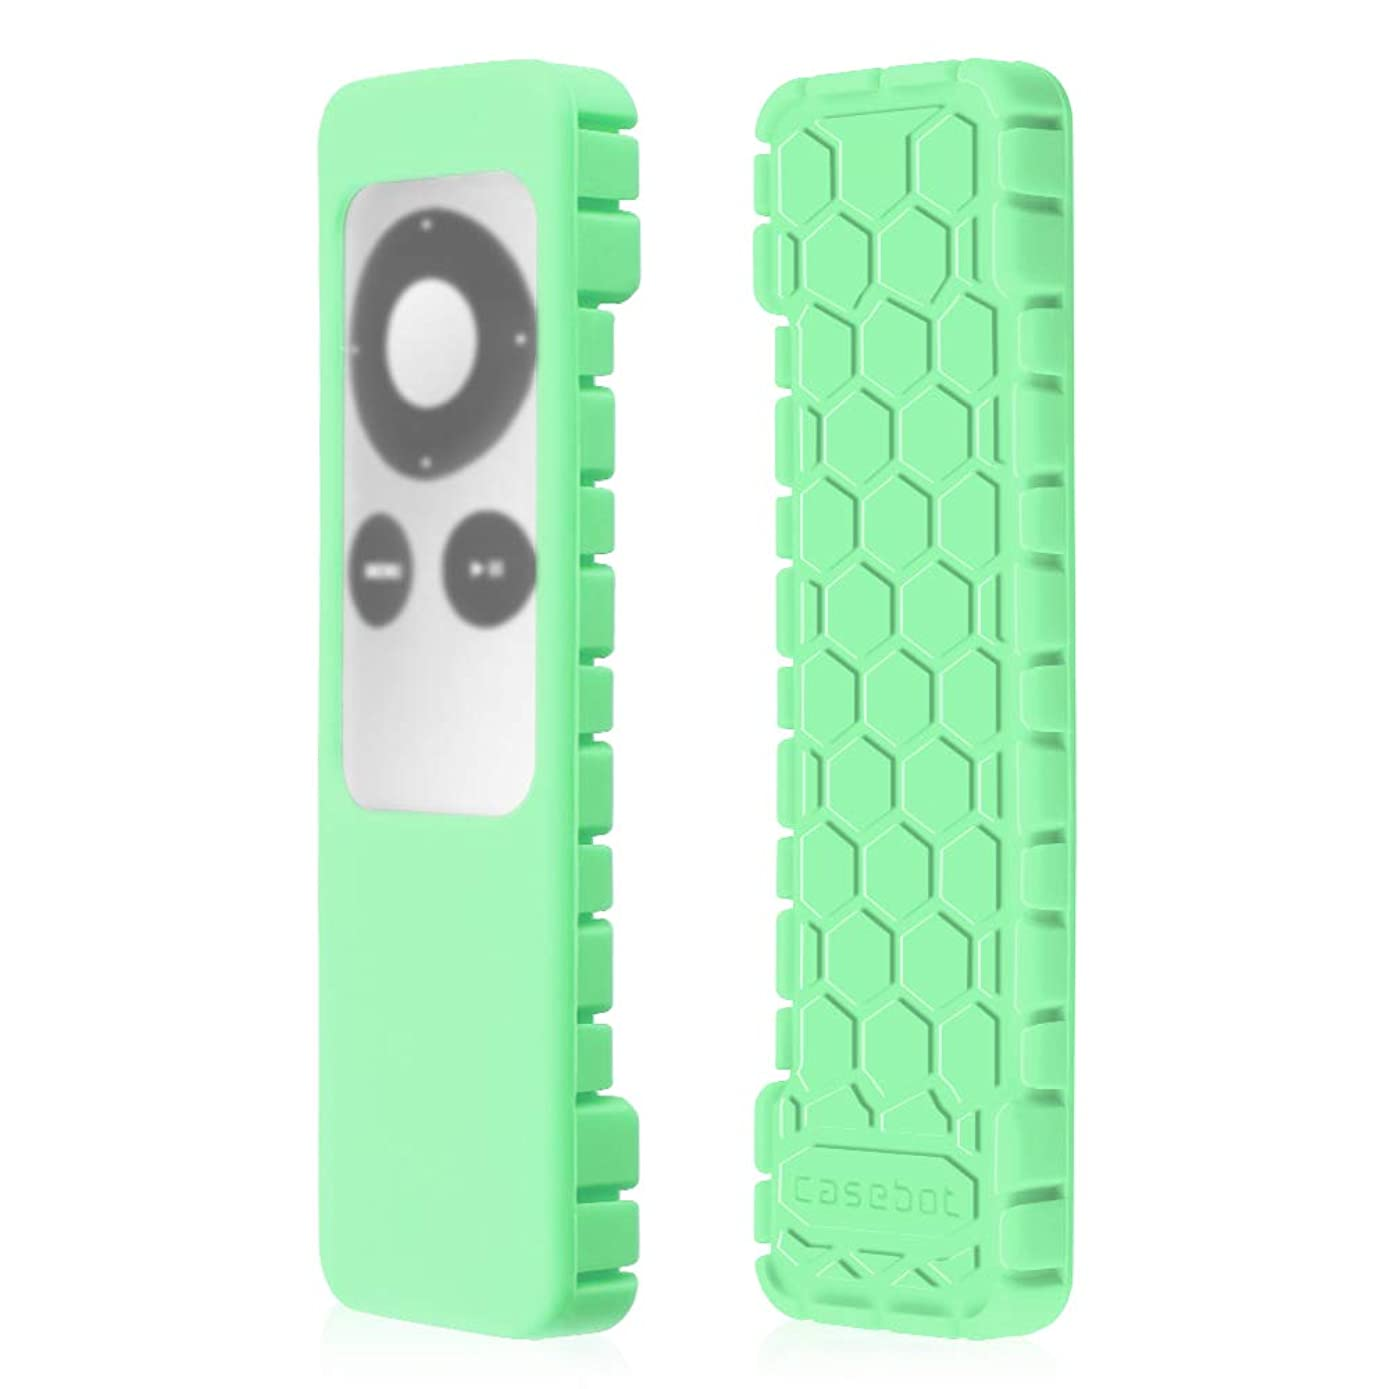 Fintie Protective Case for Apple TV 2 3 Remote Controller - Casebot [Honey Comb Series] Light Weight [Anti Slip] Shock Proof Silicone Sleeve Cover, Green Glow